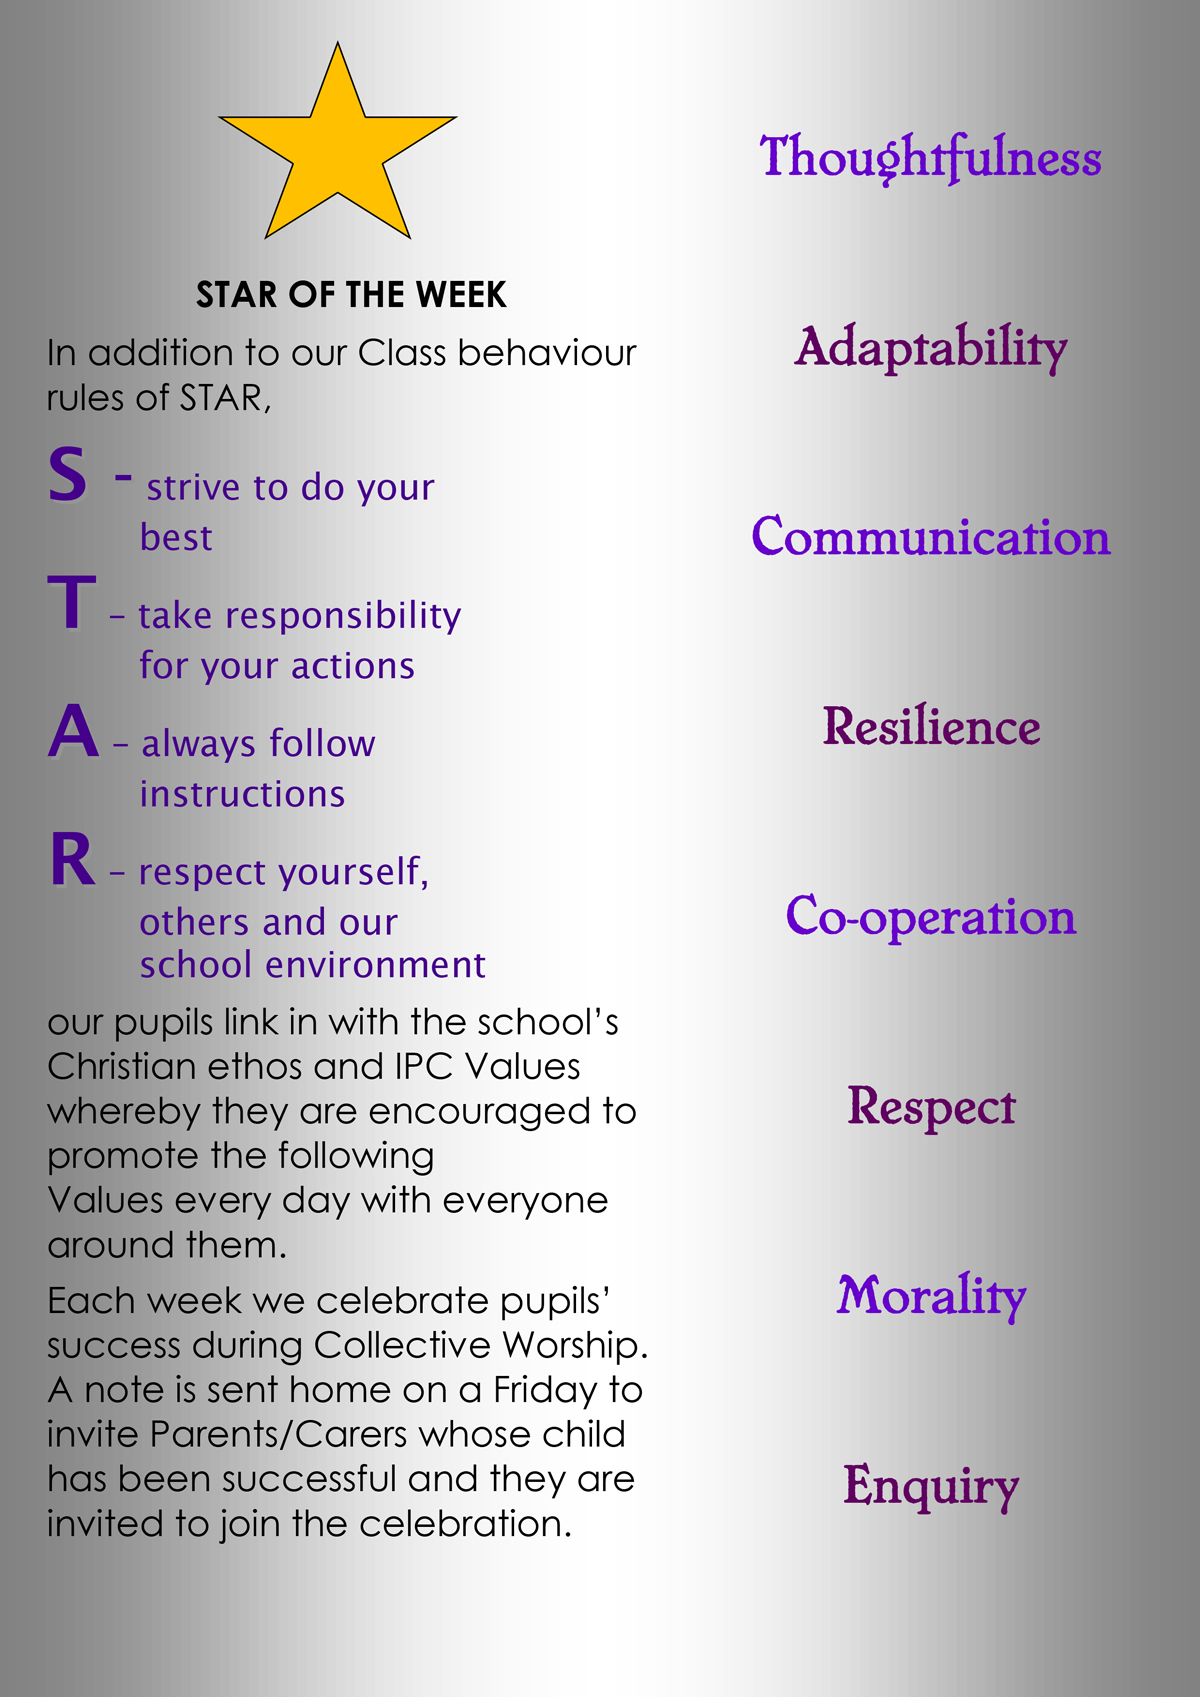 Star-of-the-week-Values.jpg